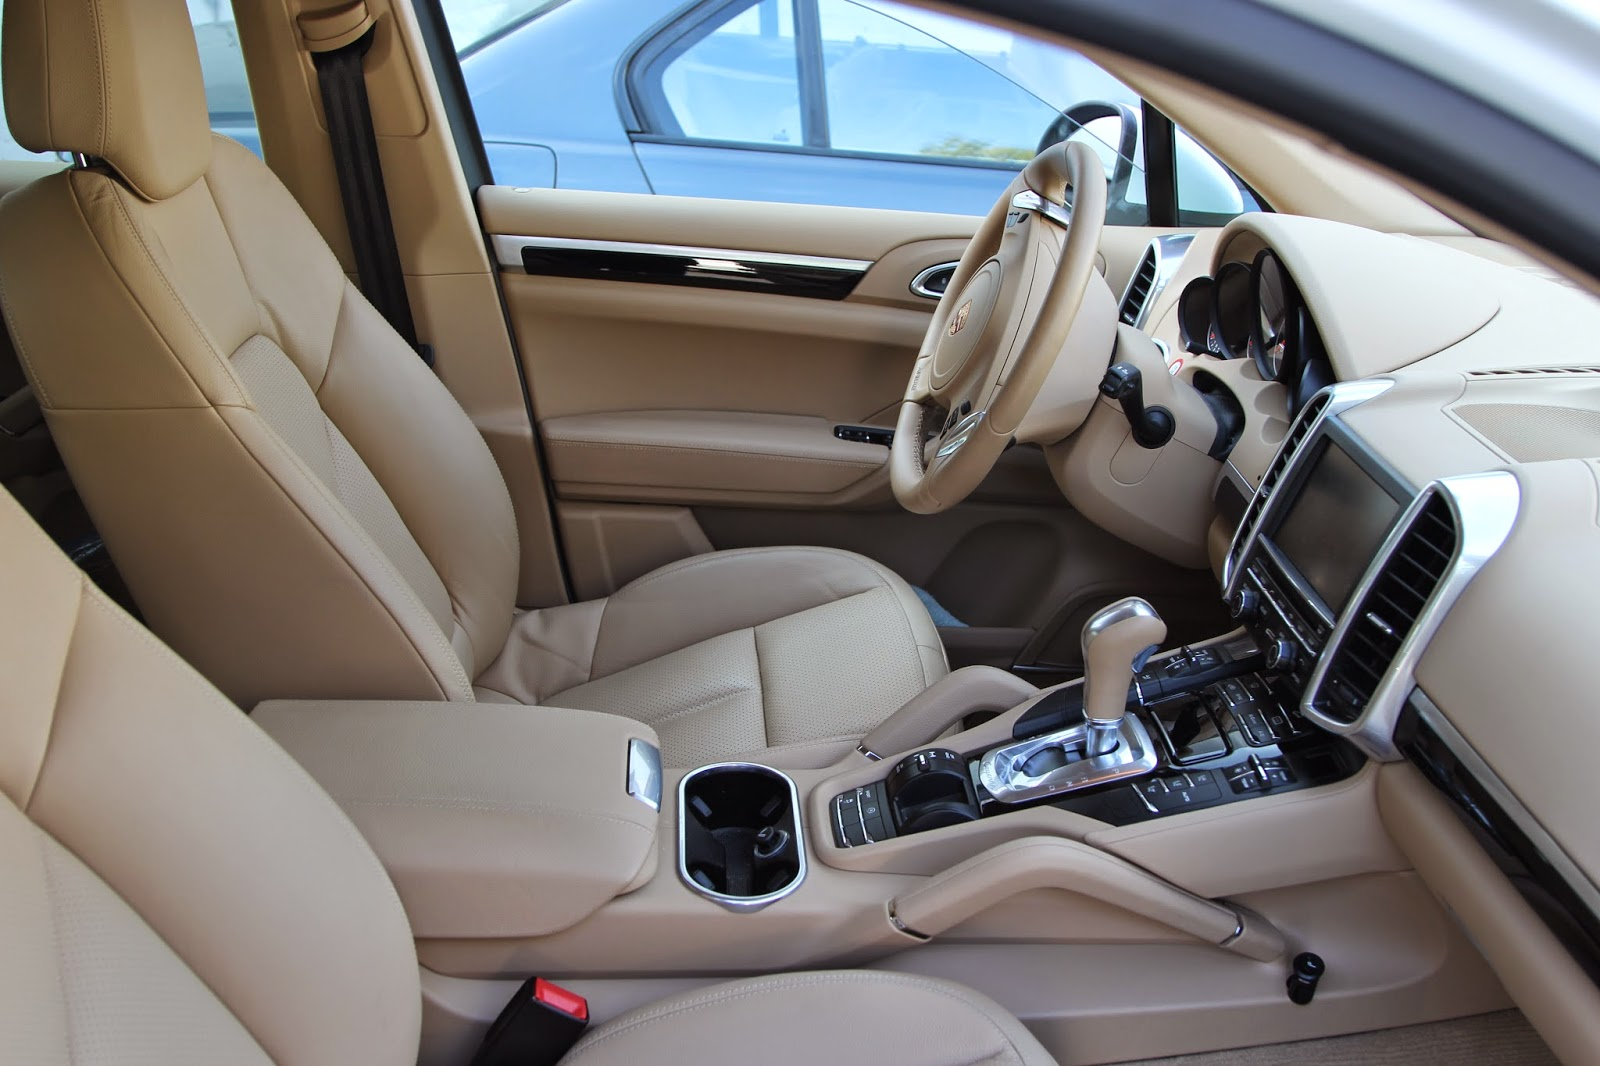 Cooks Upholstery and Classic Restoration: Porsche Cayenne Heated